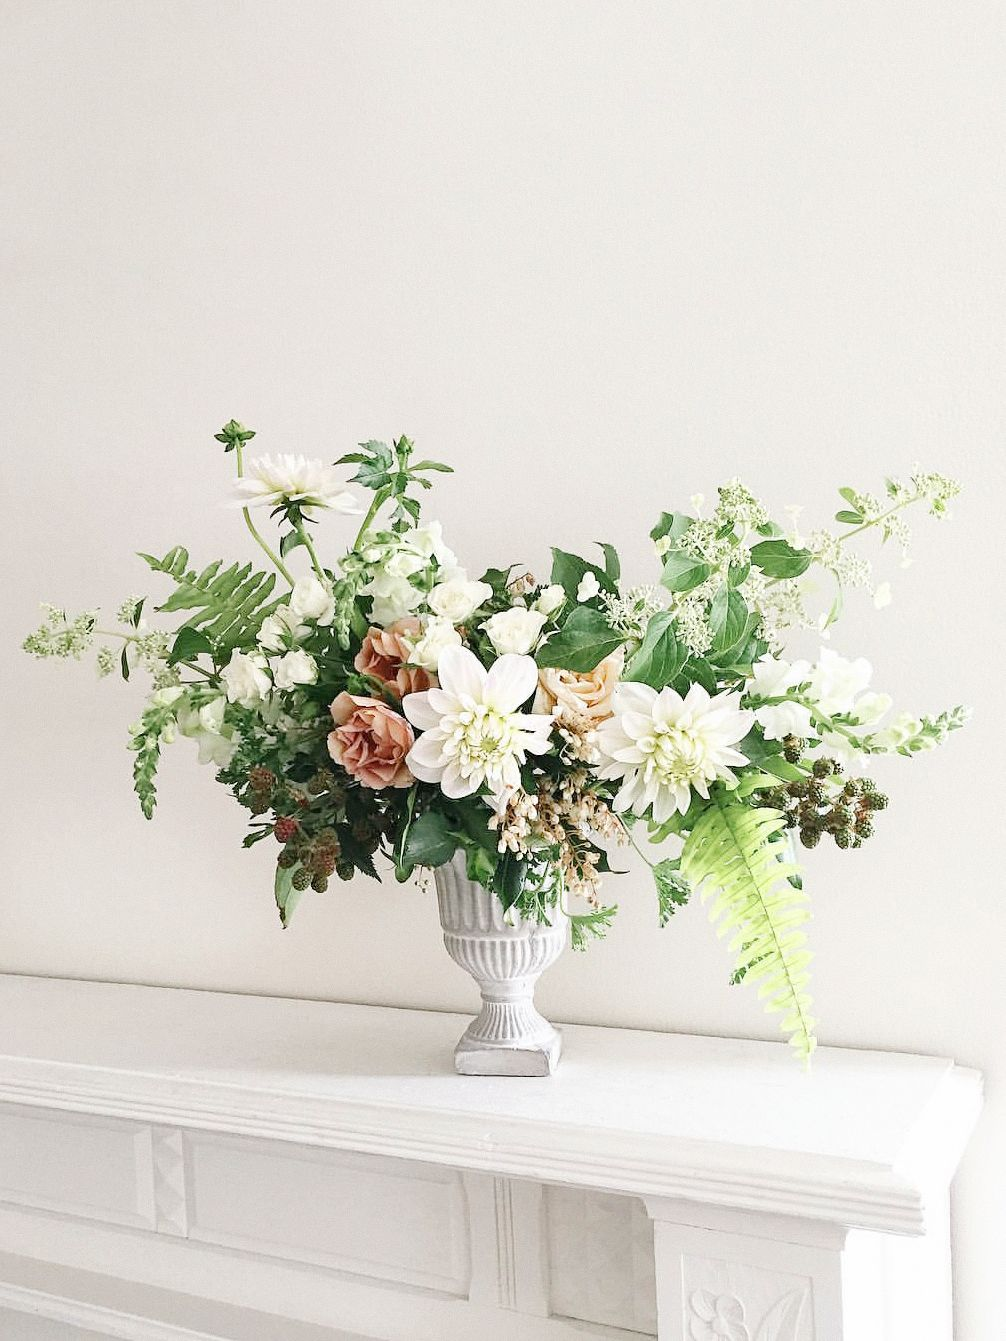 Urn Arrangements are great for weddings and events! Urn arrangements ...